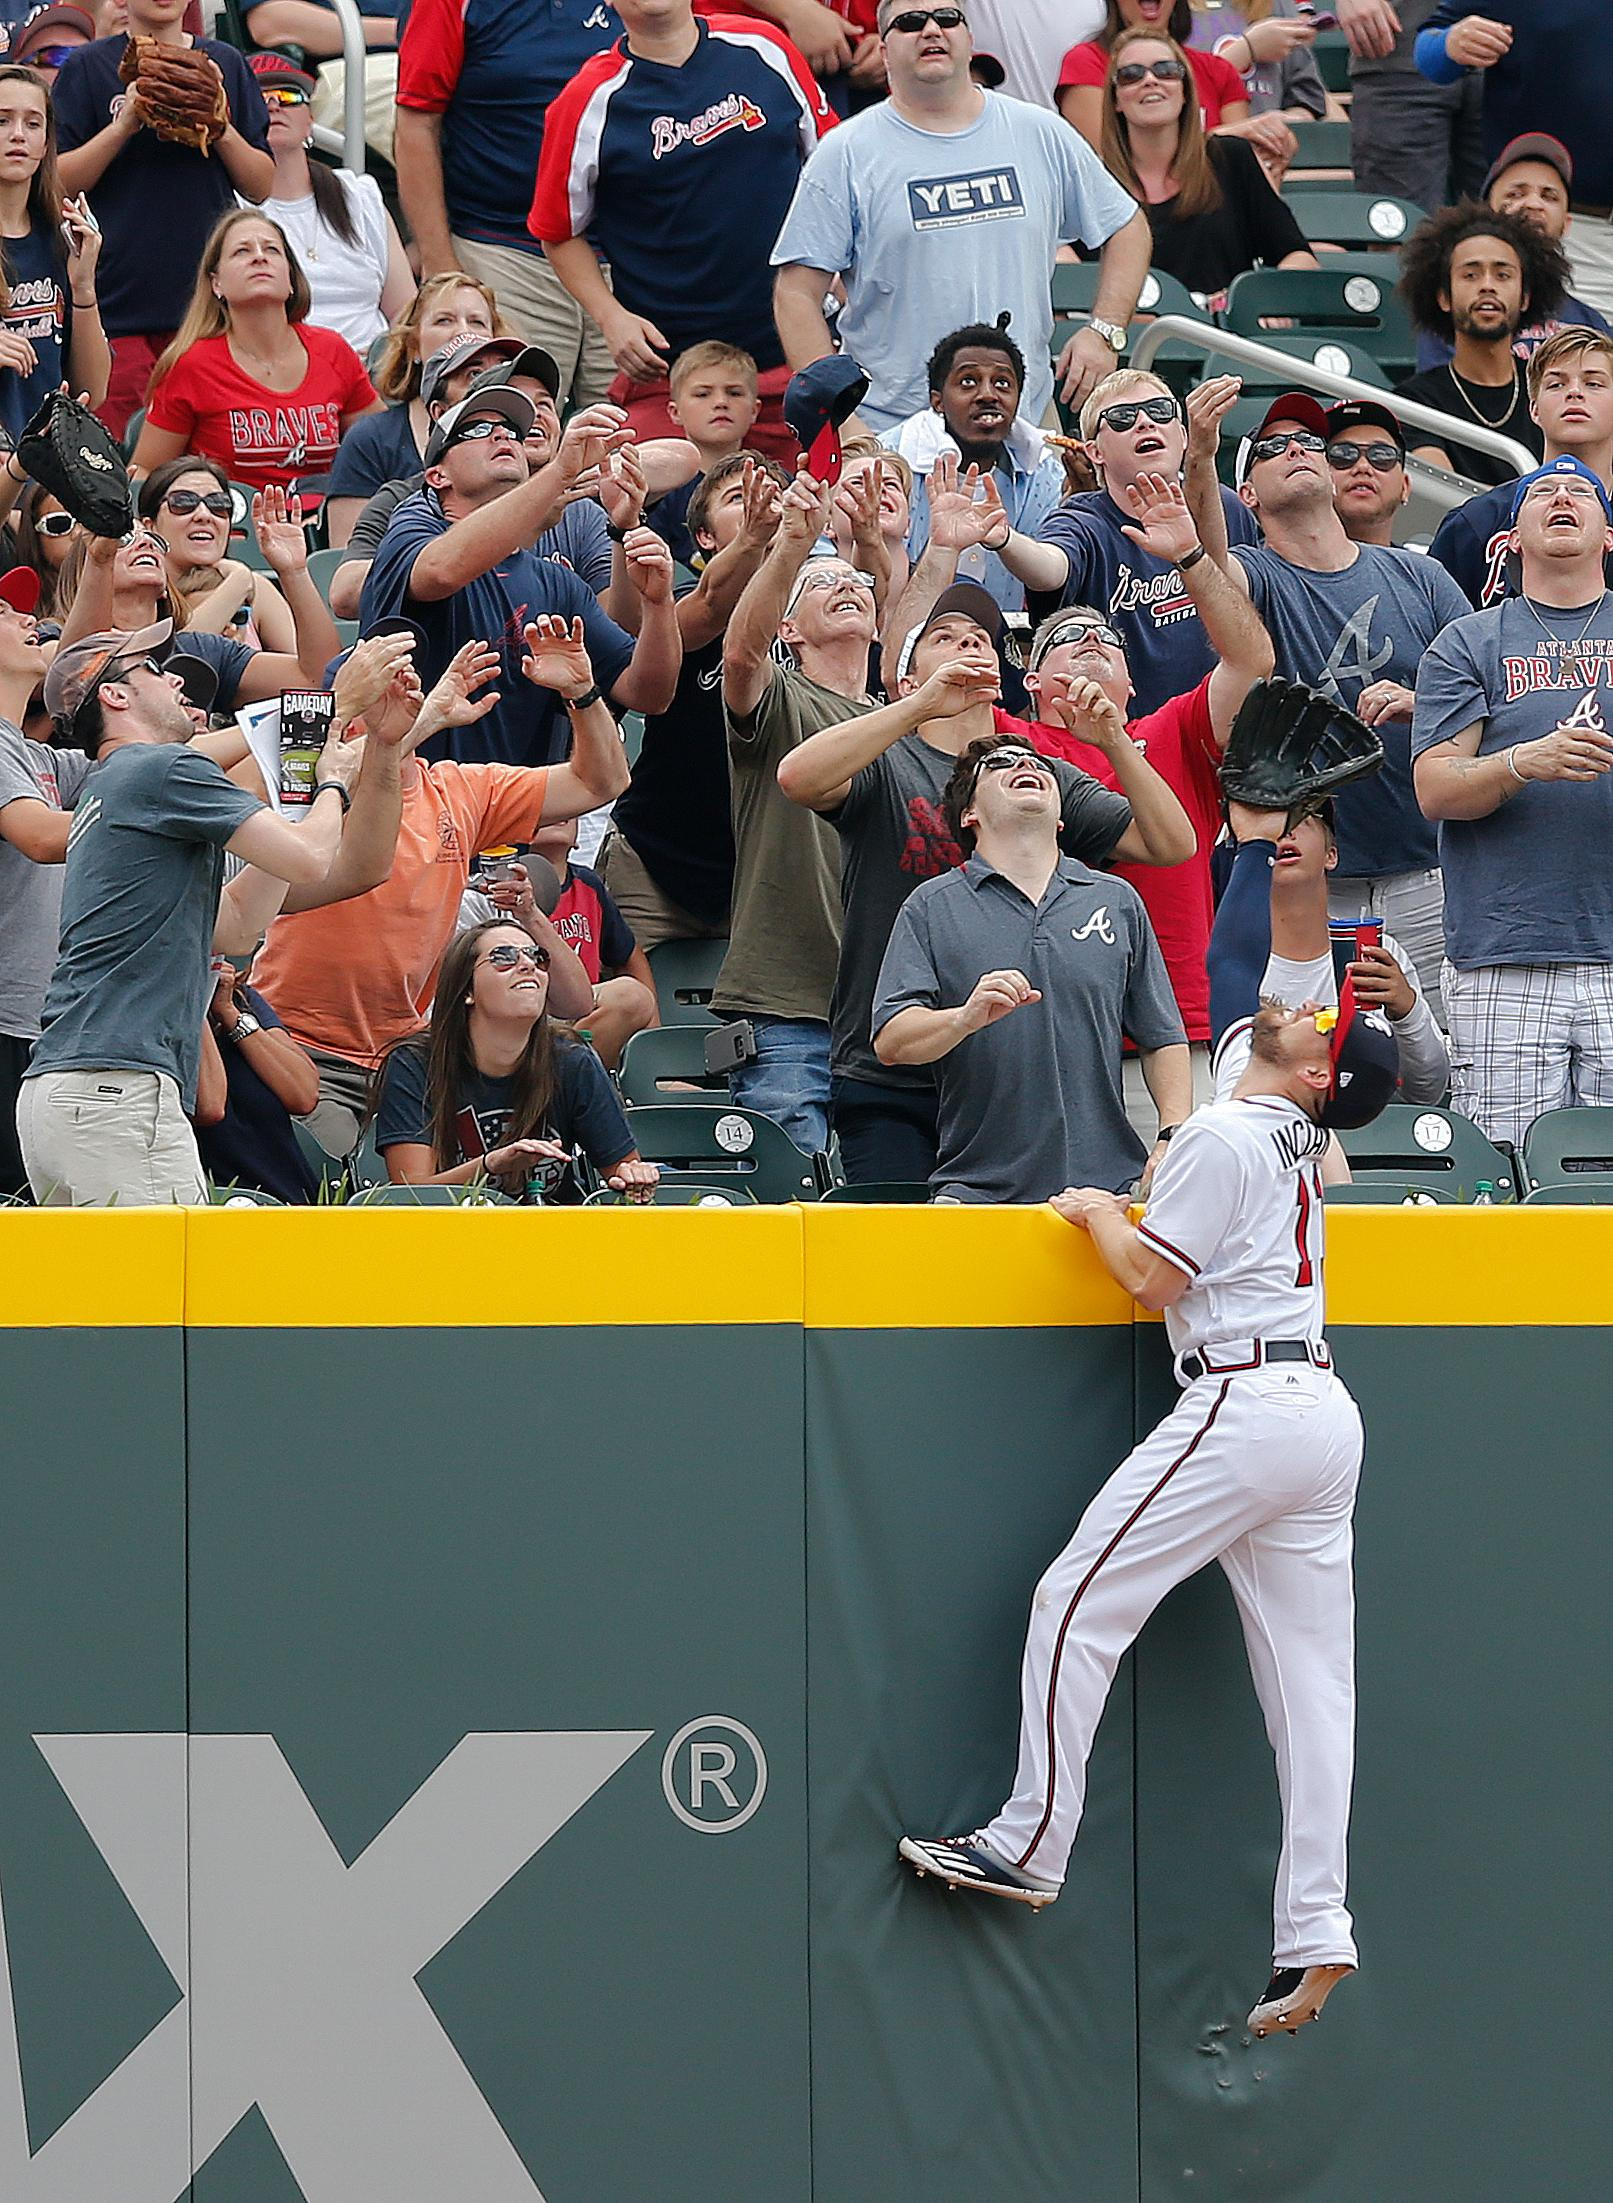 Atlanta Braves center fielder Ender Inciarte (11) goes up the wall as fans reach for a ball ht for a home run by San Diego Padres' Ryan Schimpf in the second inning of a baseball game Sunday, April 16, 2017, in Atlanta. (AP Photo/John Bazemore)